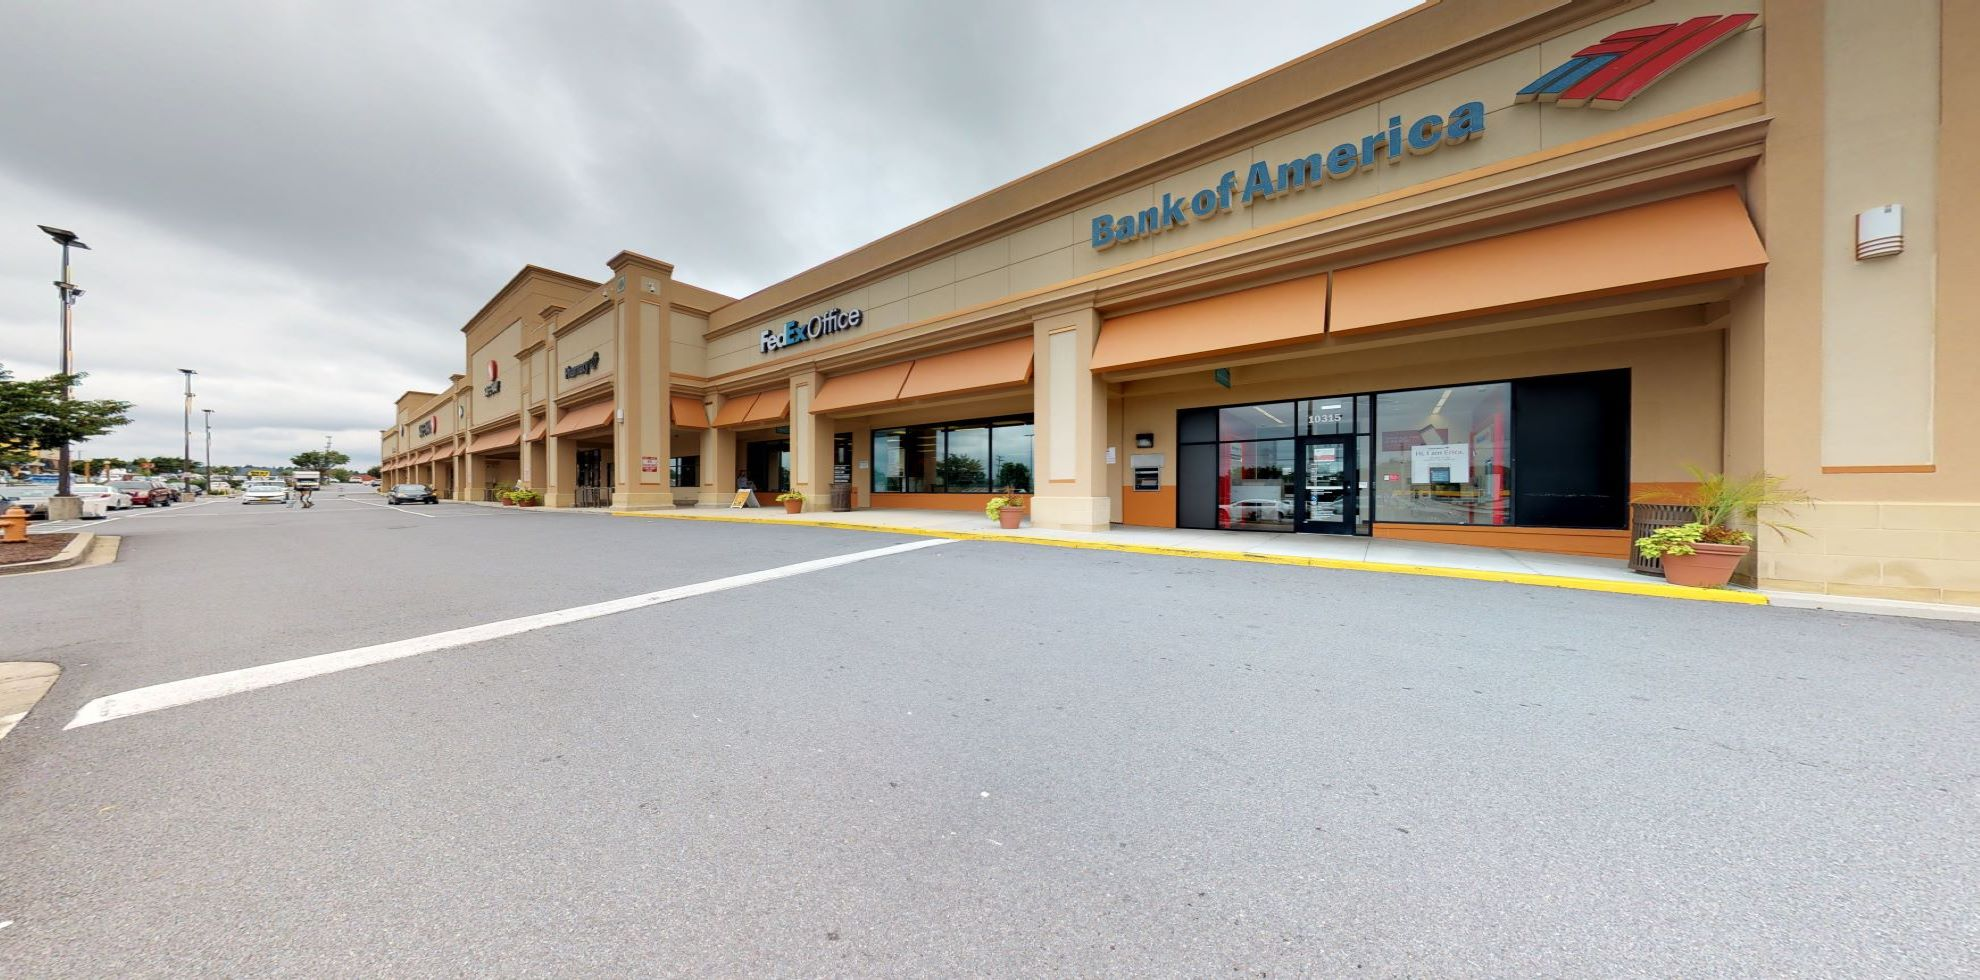 Bank of America financial center with drive-thru ATM | 10315 Reisterstown Rd, Owings Mills, MD 21117